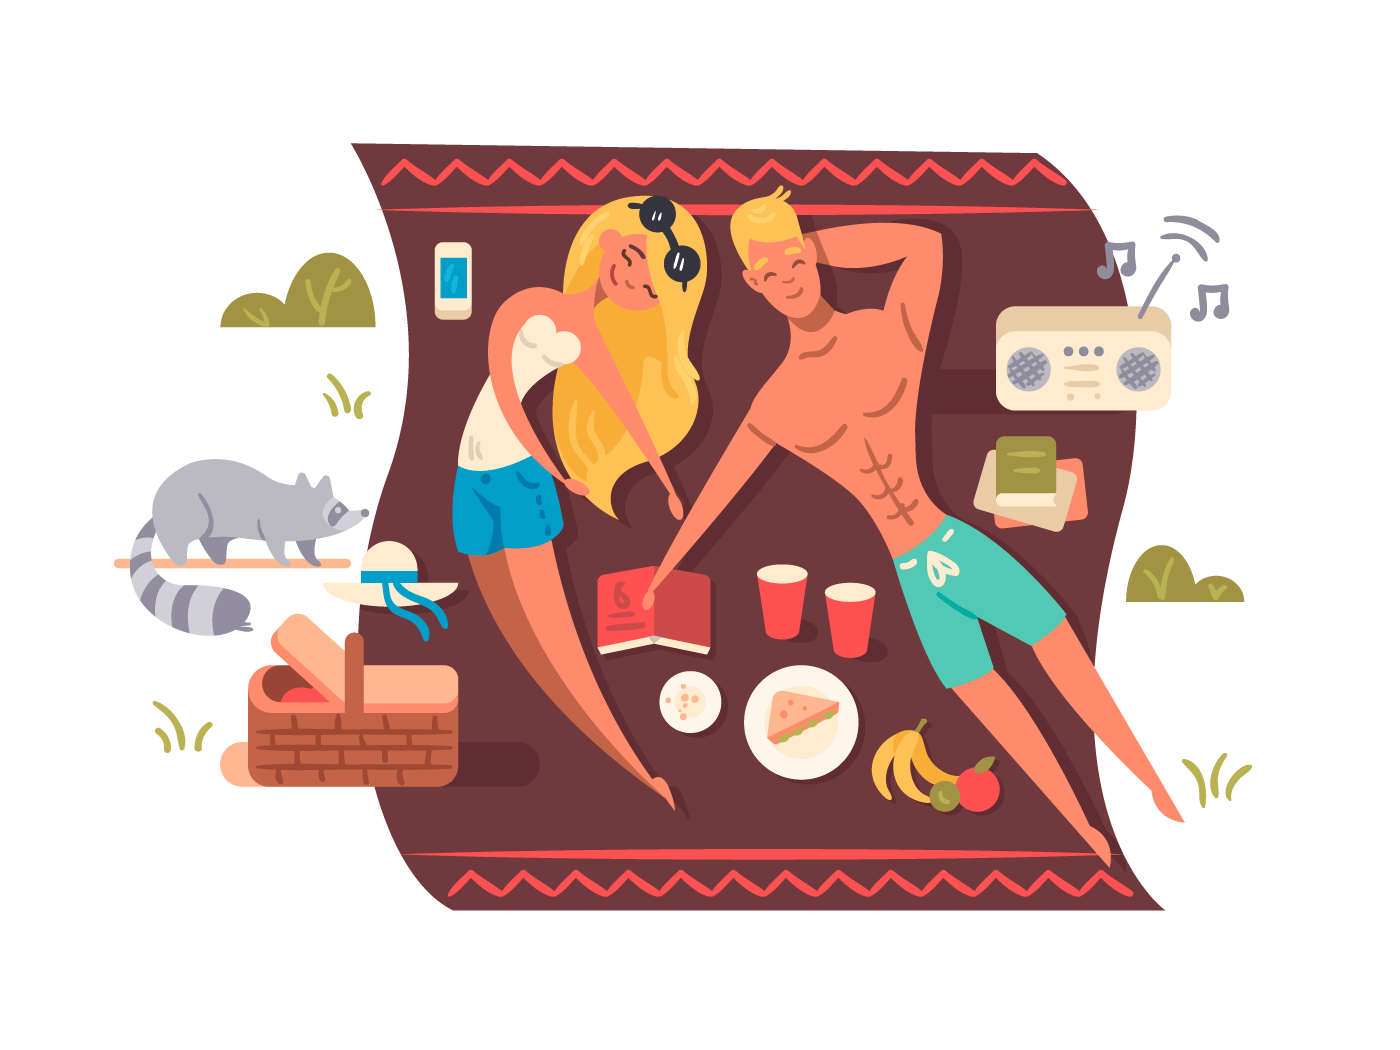 Man and woman training in gym illustrationPicnic in nature park illustration